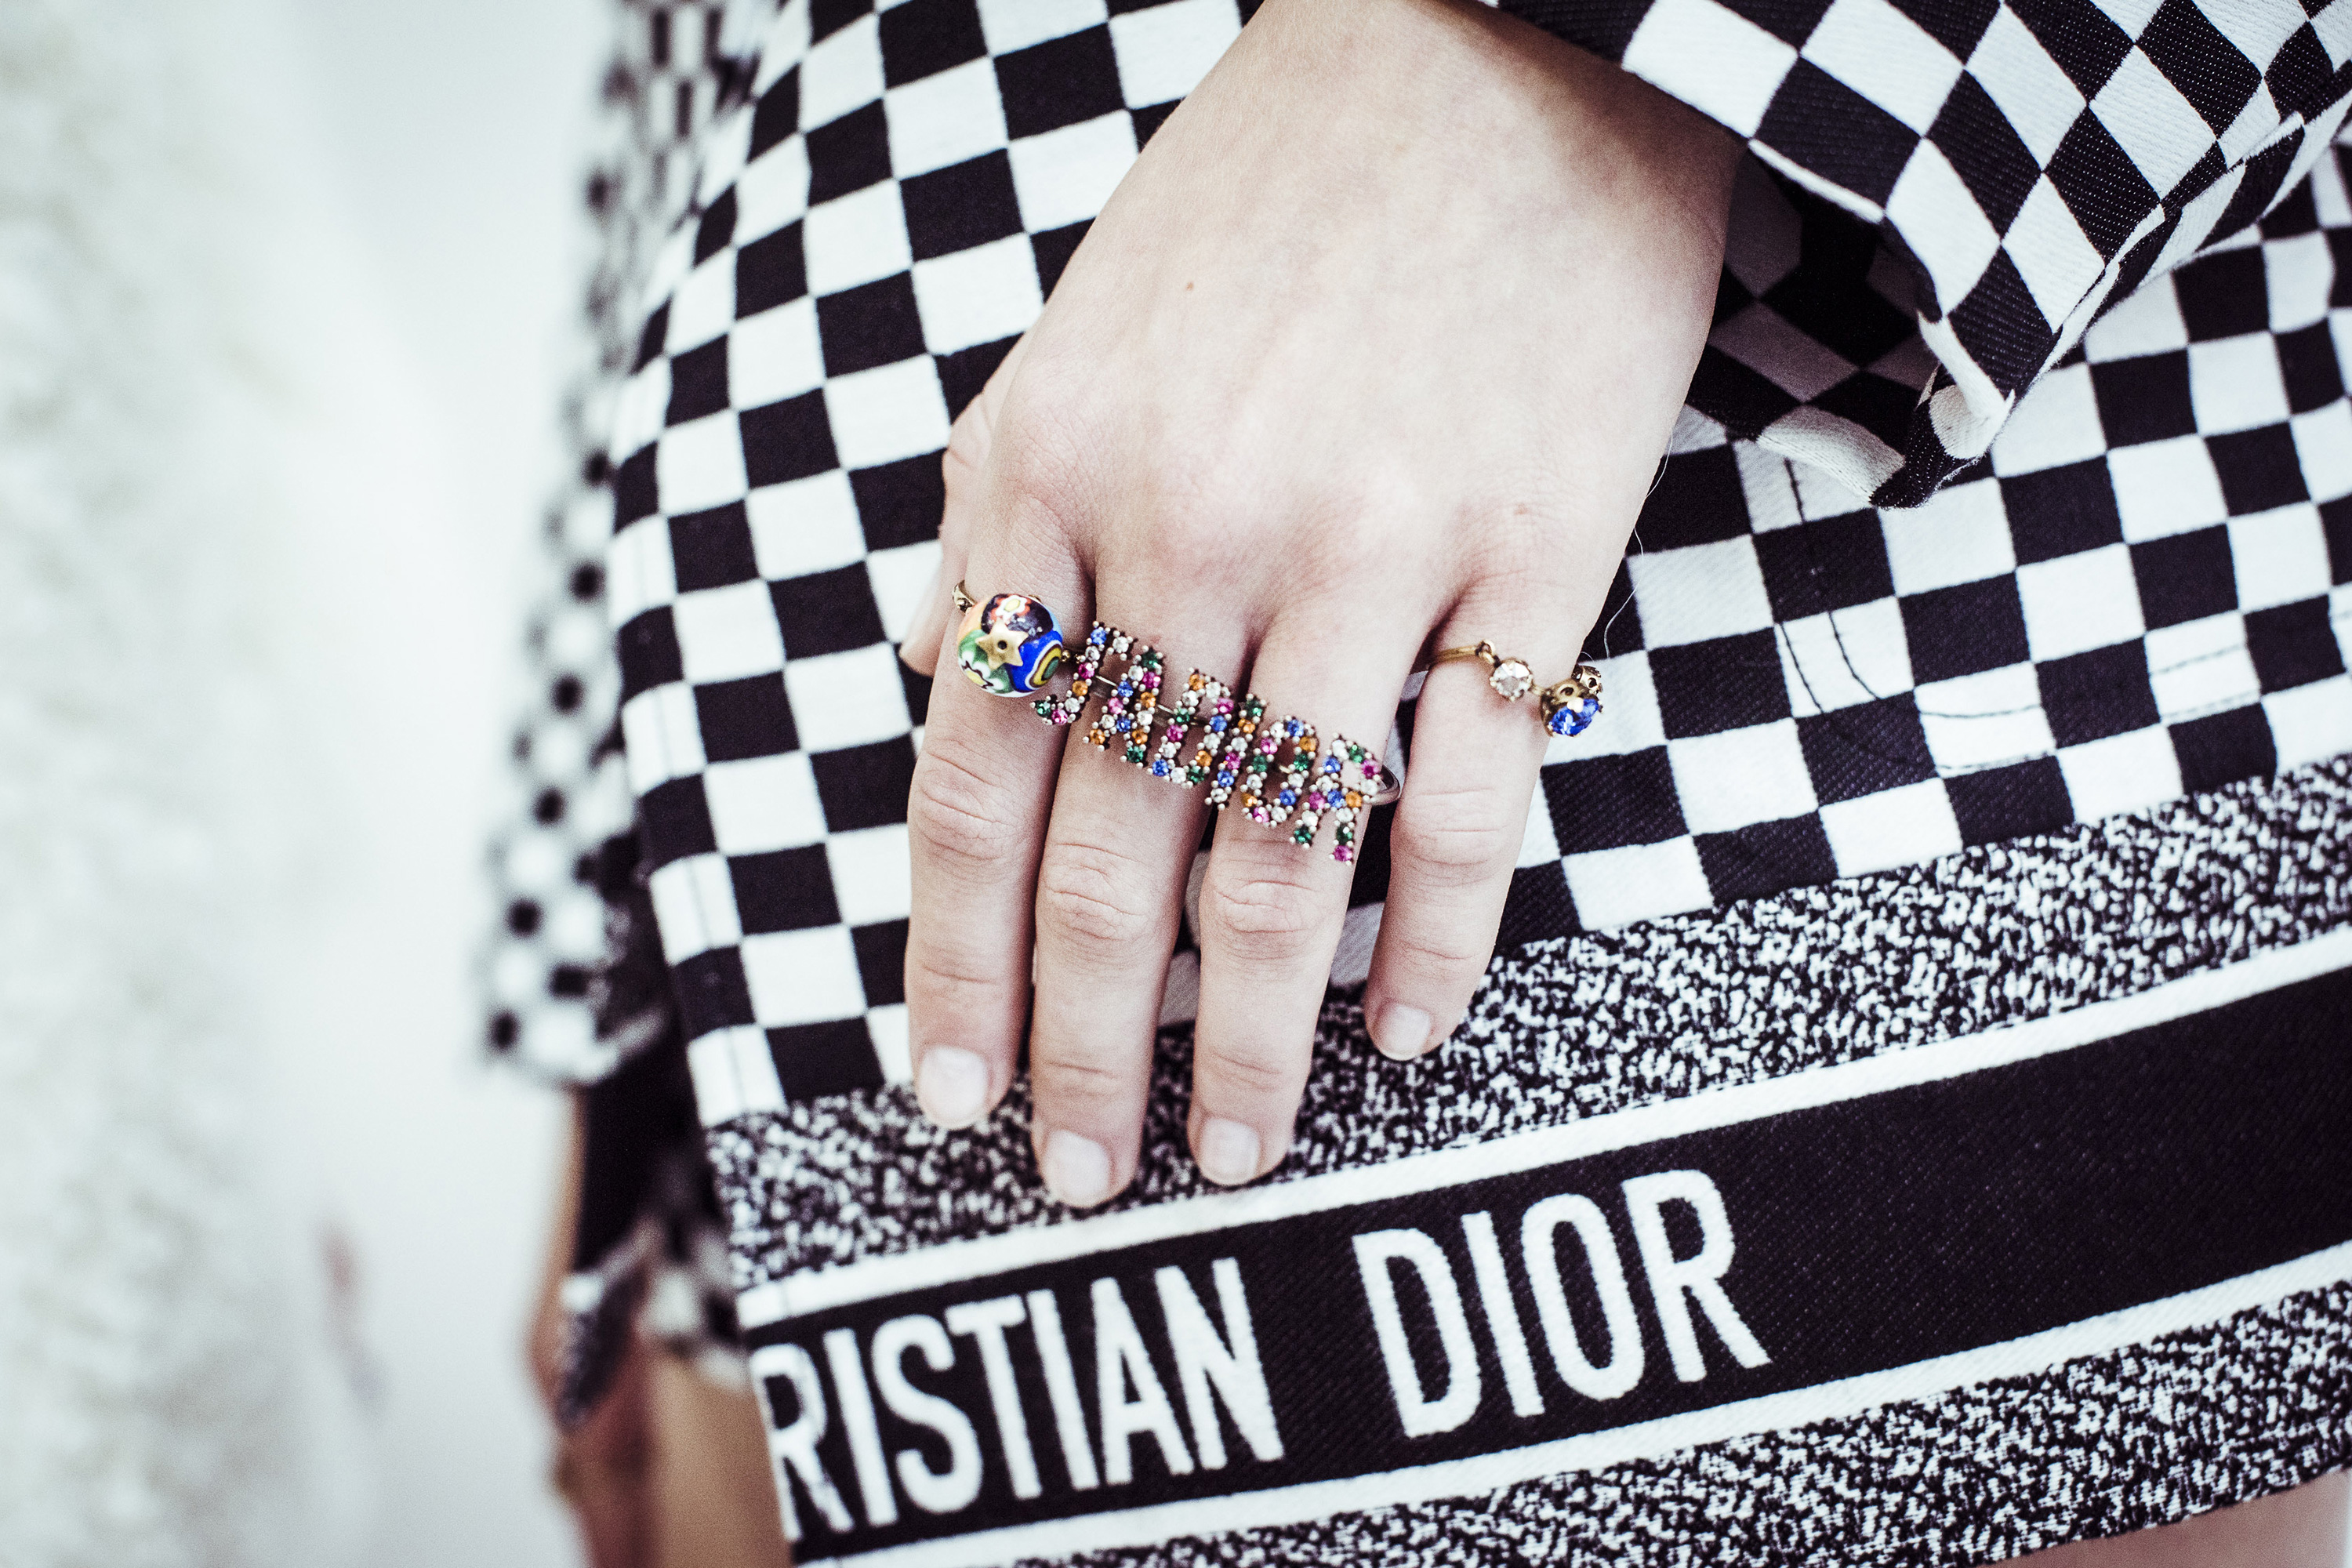 Dior Spring/Summer 2018 Ready-to-Wear Collection - Accessories